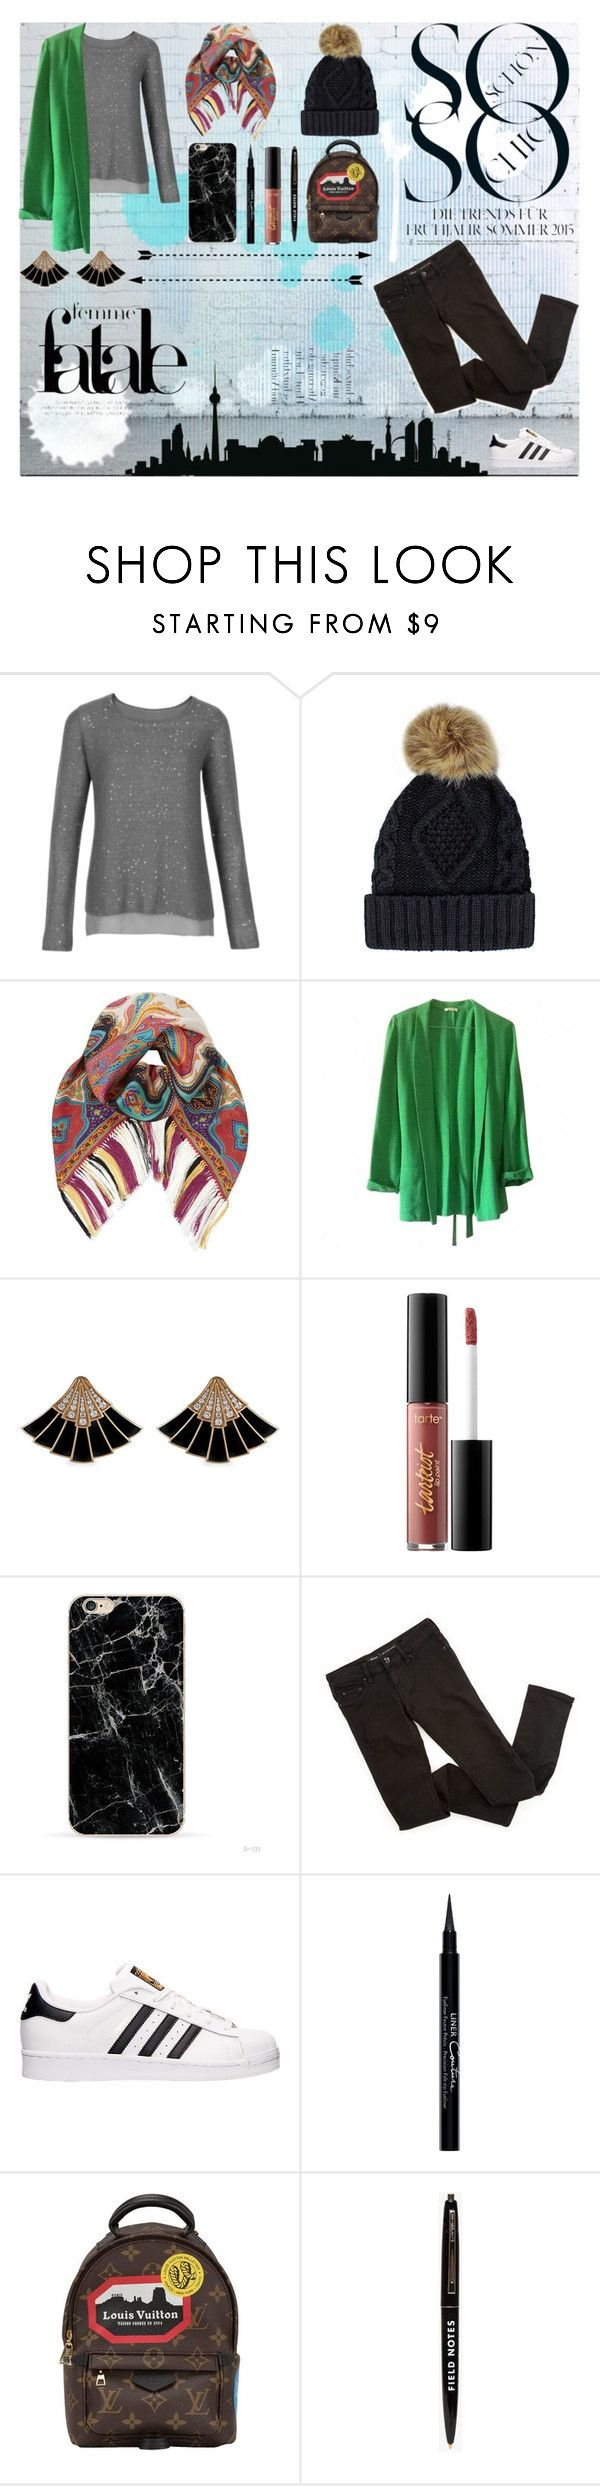 """""""Berlin Style"""" by claralodesky ❤ liked on Polyvore featuring Etro, American Vintage, tarte, adidas, Givenchy and Louis Vuitton"""